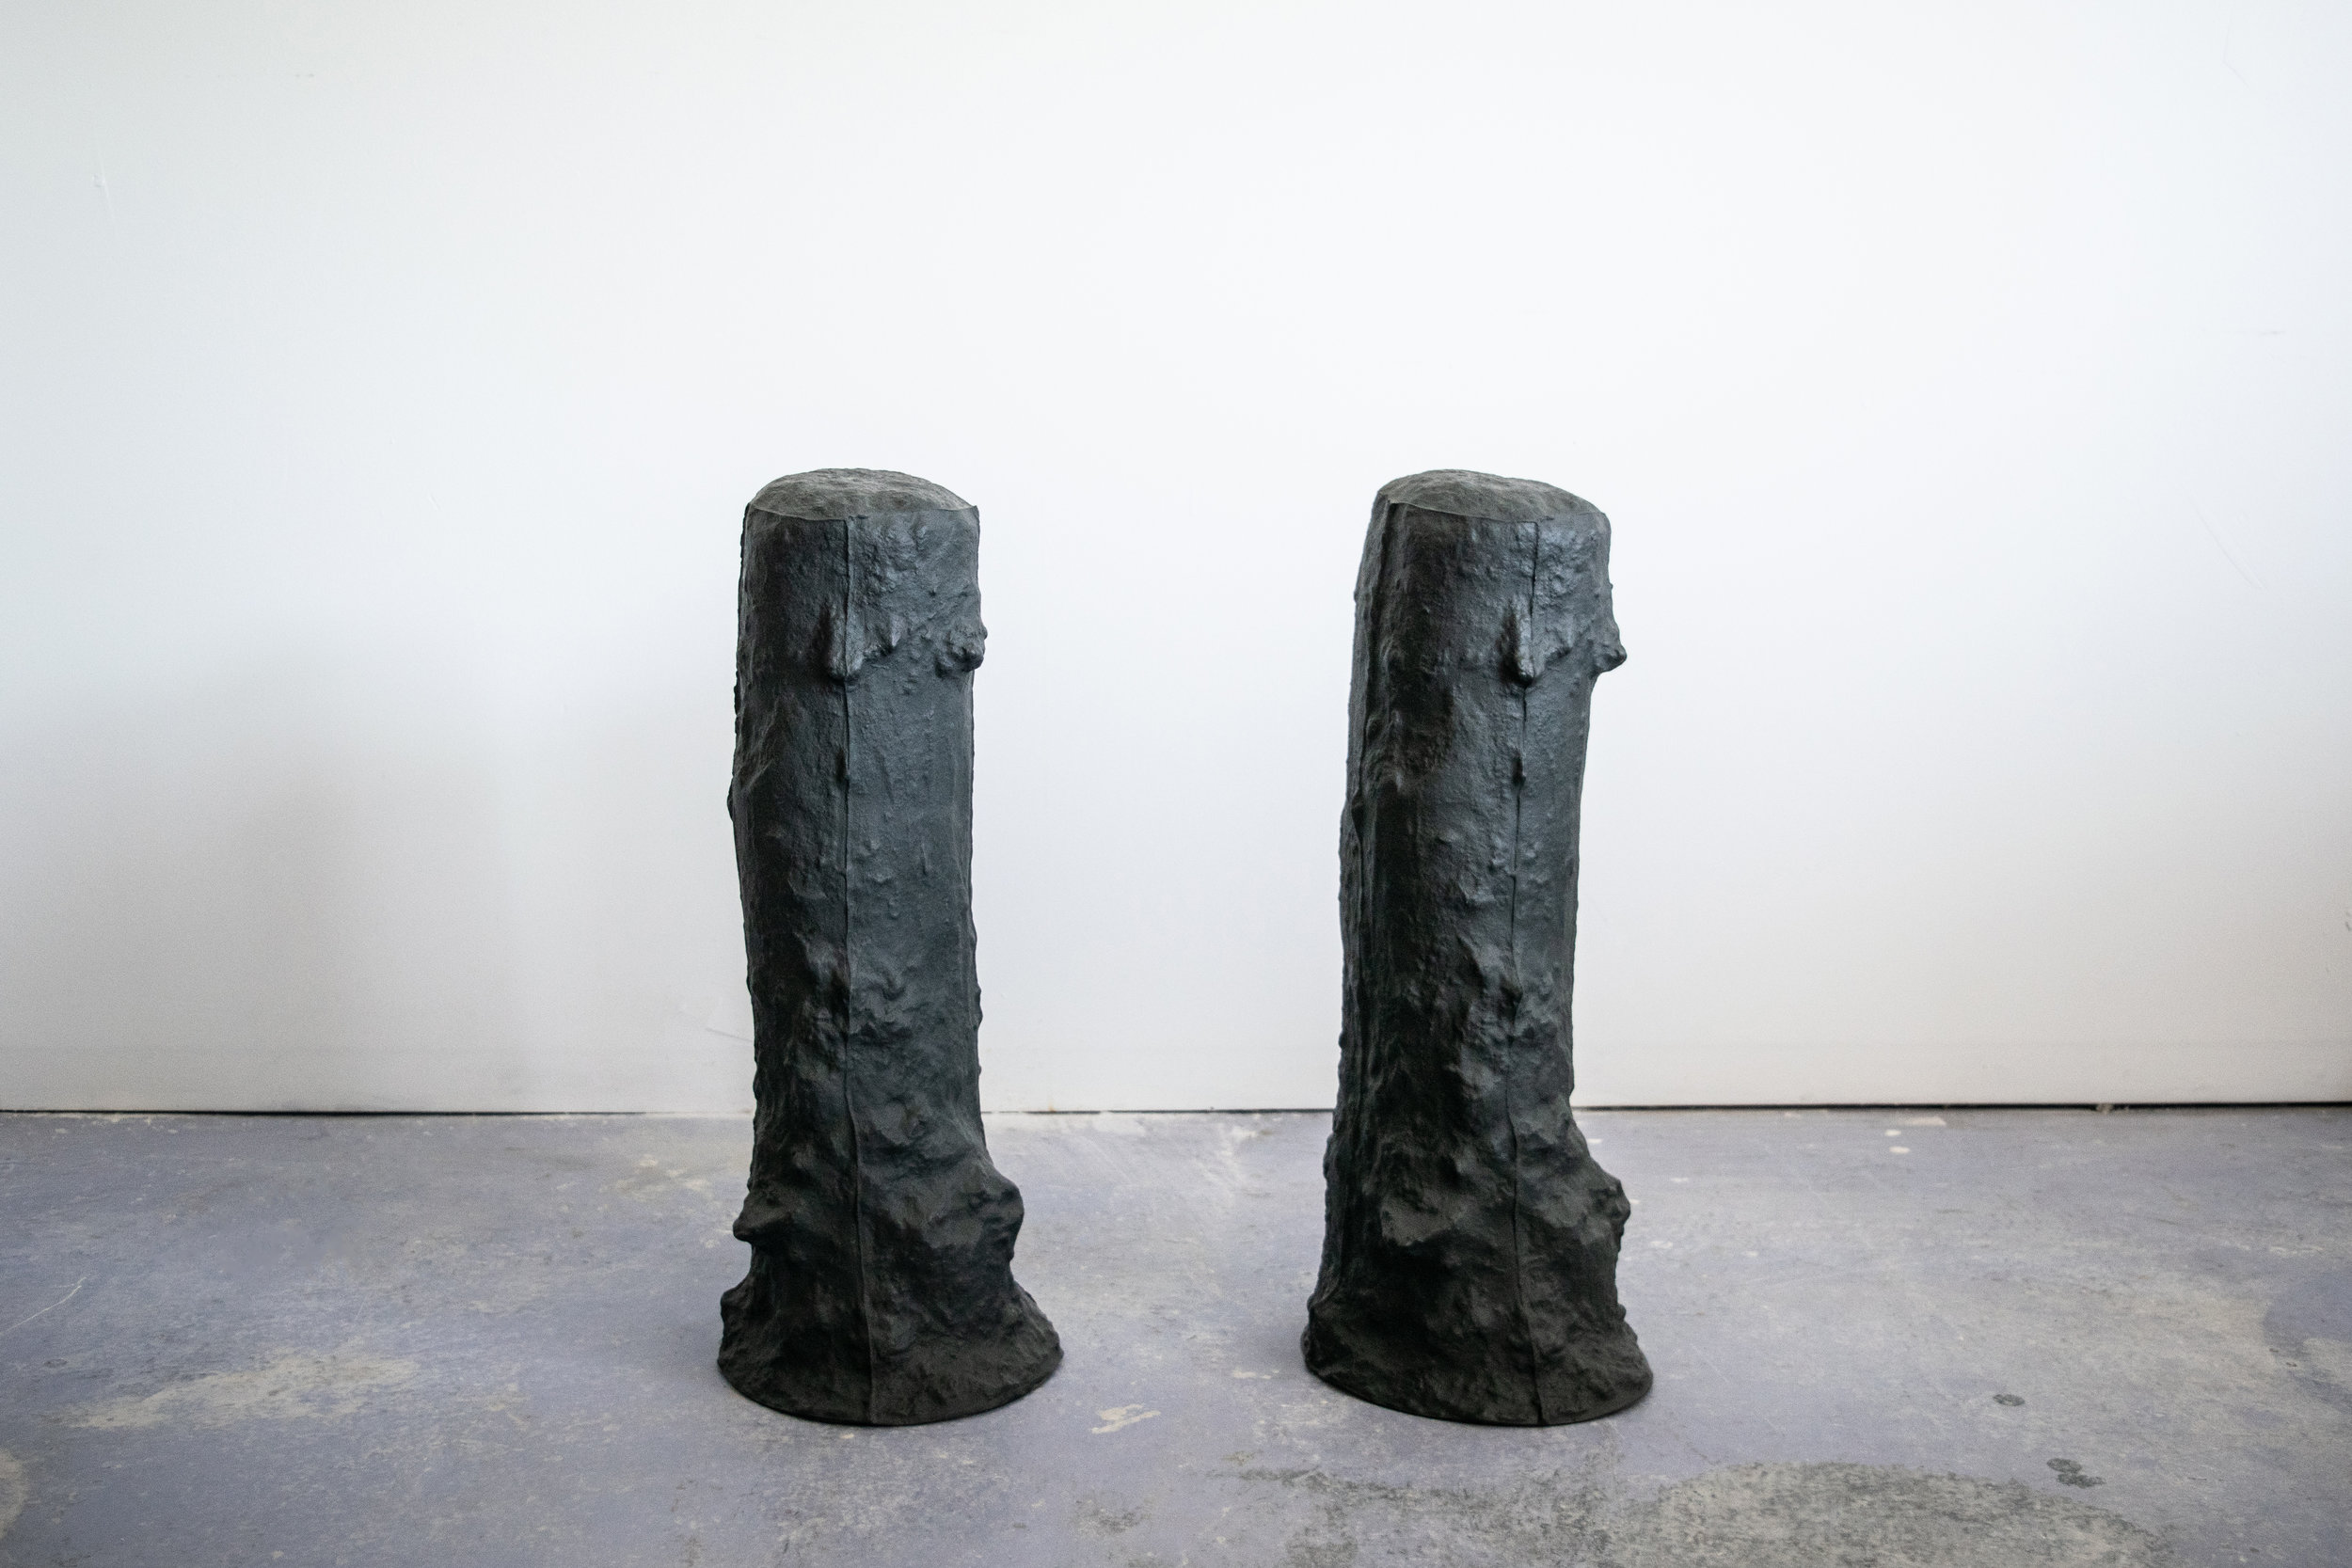 """terrain and territory , slip cast black porcelain with glazed interior 10"""" diameter x 28"""" tall. 2018   terrain and territory  focuses on the potent space of the fence post hole as a metaphor, and commentary against the current administrations determination to construct false narratives and divisions around issues regarding immigration, and """"us"""" and """"them"""" mentality. By pulling the subterranean space of the hole up and out of the ground as a hollow ceramic form, it shifts the functionality of the space as container, rather than divider, and placed; seeks to call into attention the skin of this often over looked space. The extension of a fences intention, to delineate, is further implied in the gallery by constructing an implied border between the two forms set in the space."""